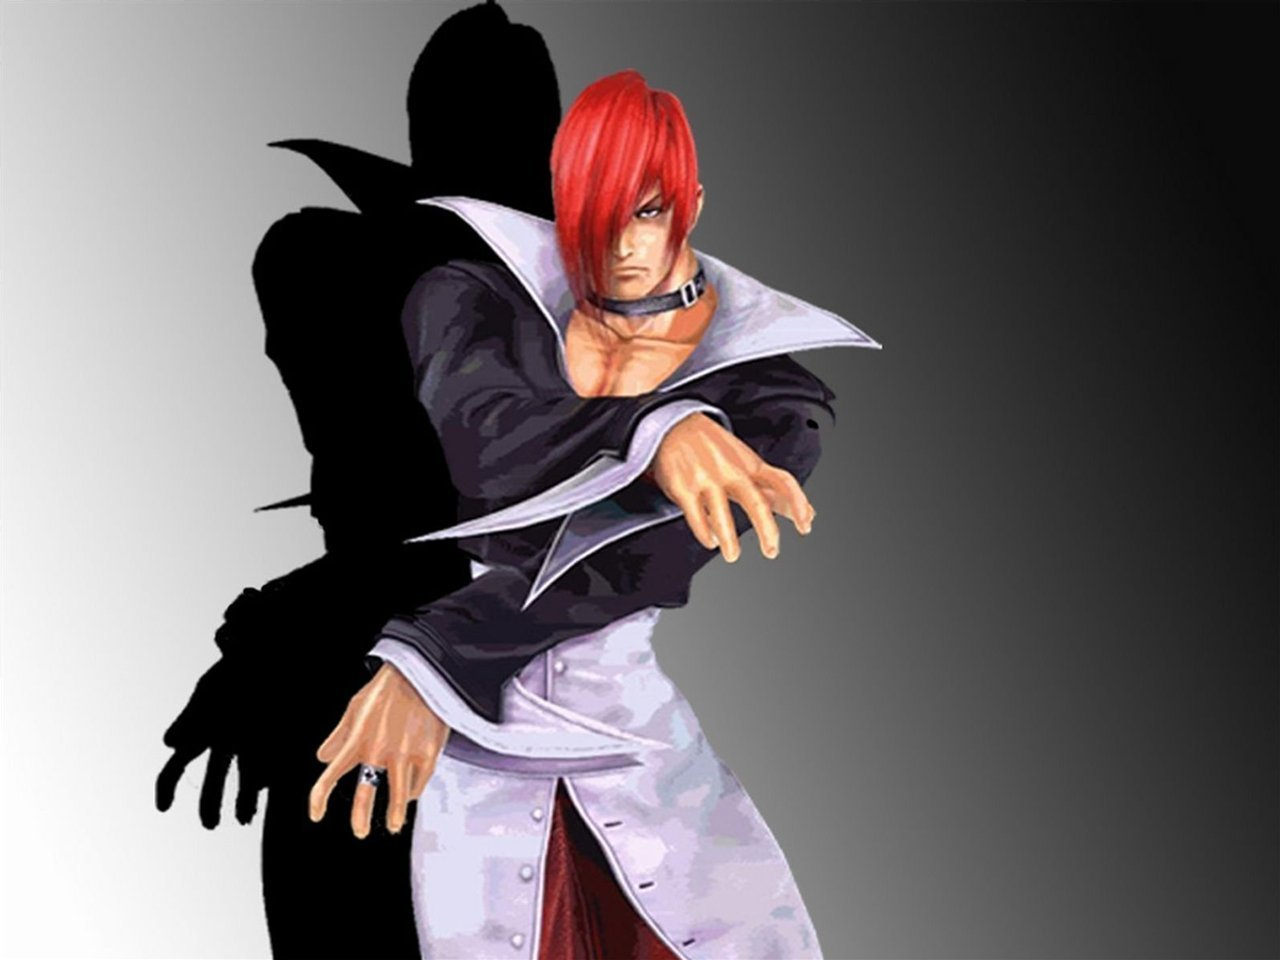 The King Of Fighters Images Kof Iori Hd Wallpaper And Background